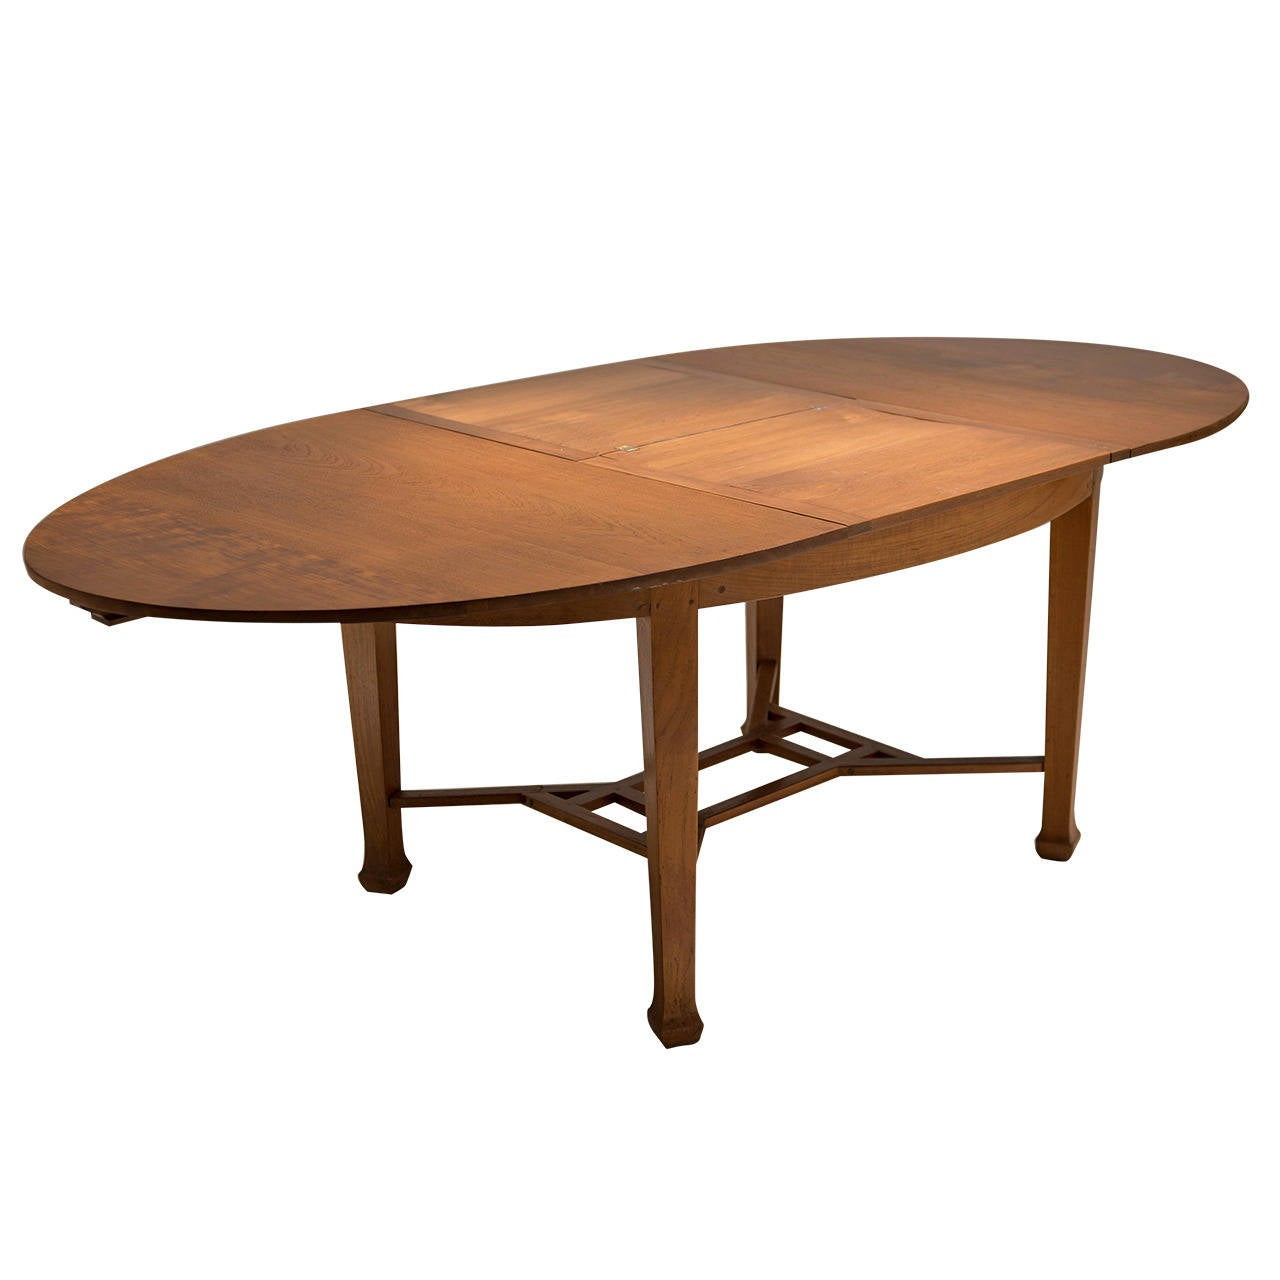 Old Colonial Dining Table With Leaf, Indonesia, Circa 1930 At 1stdibs